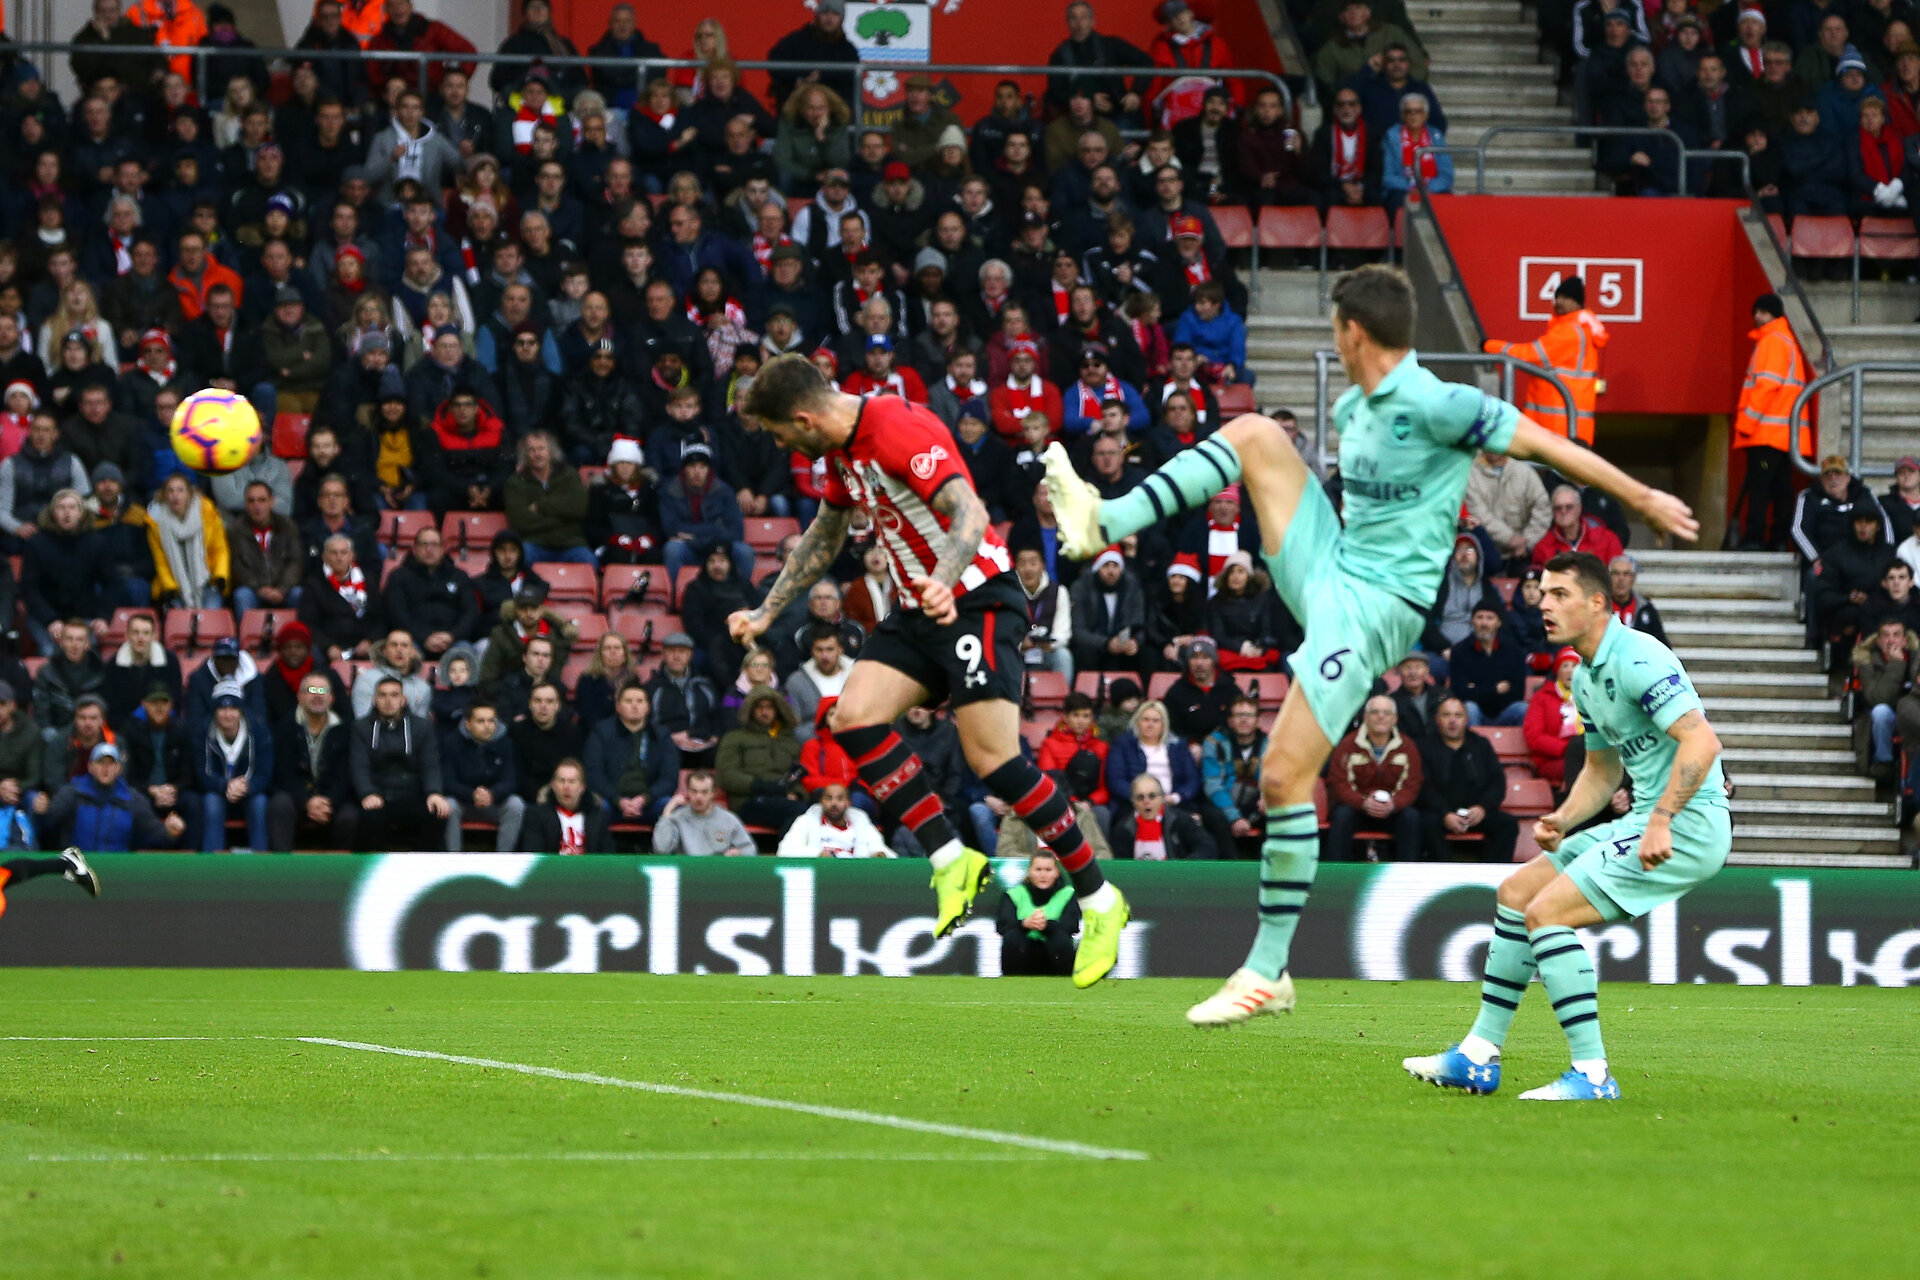 SOUTHAMPTON, ENGLAND - DECEMBER 16: Danny Ings scores (Left) during the Premier League match between Southampton FC and Arsenal FC at St Mary's Stadium on December 16, 2018 in Southampton, United Kingdom. (Photo by James Bridle - Southampton FC/Southampton FC via Getty Images)